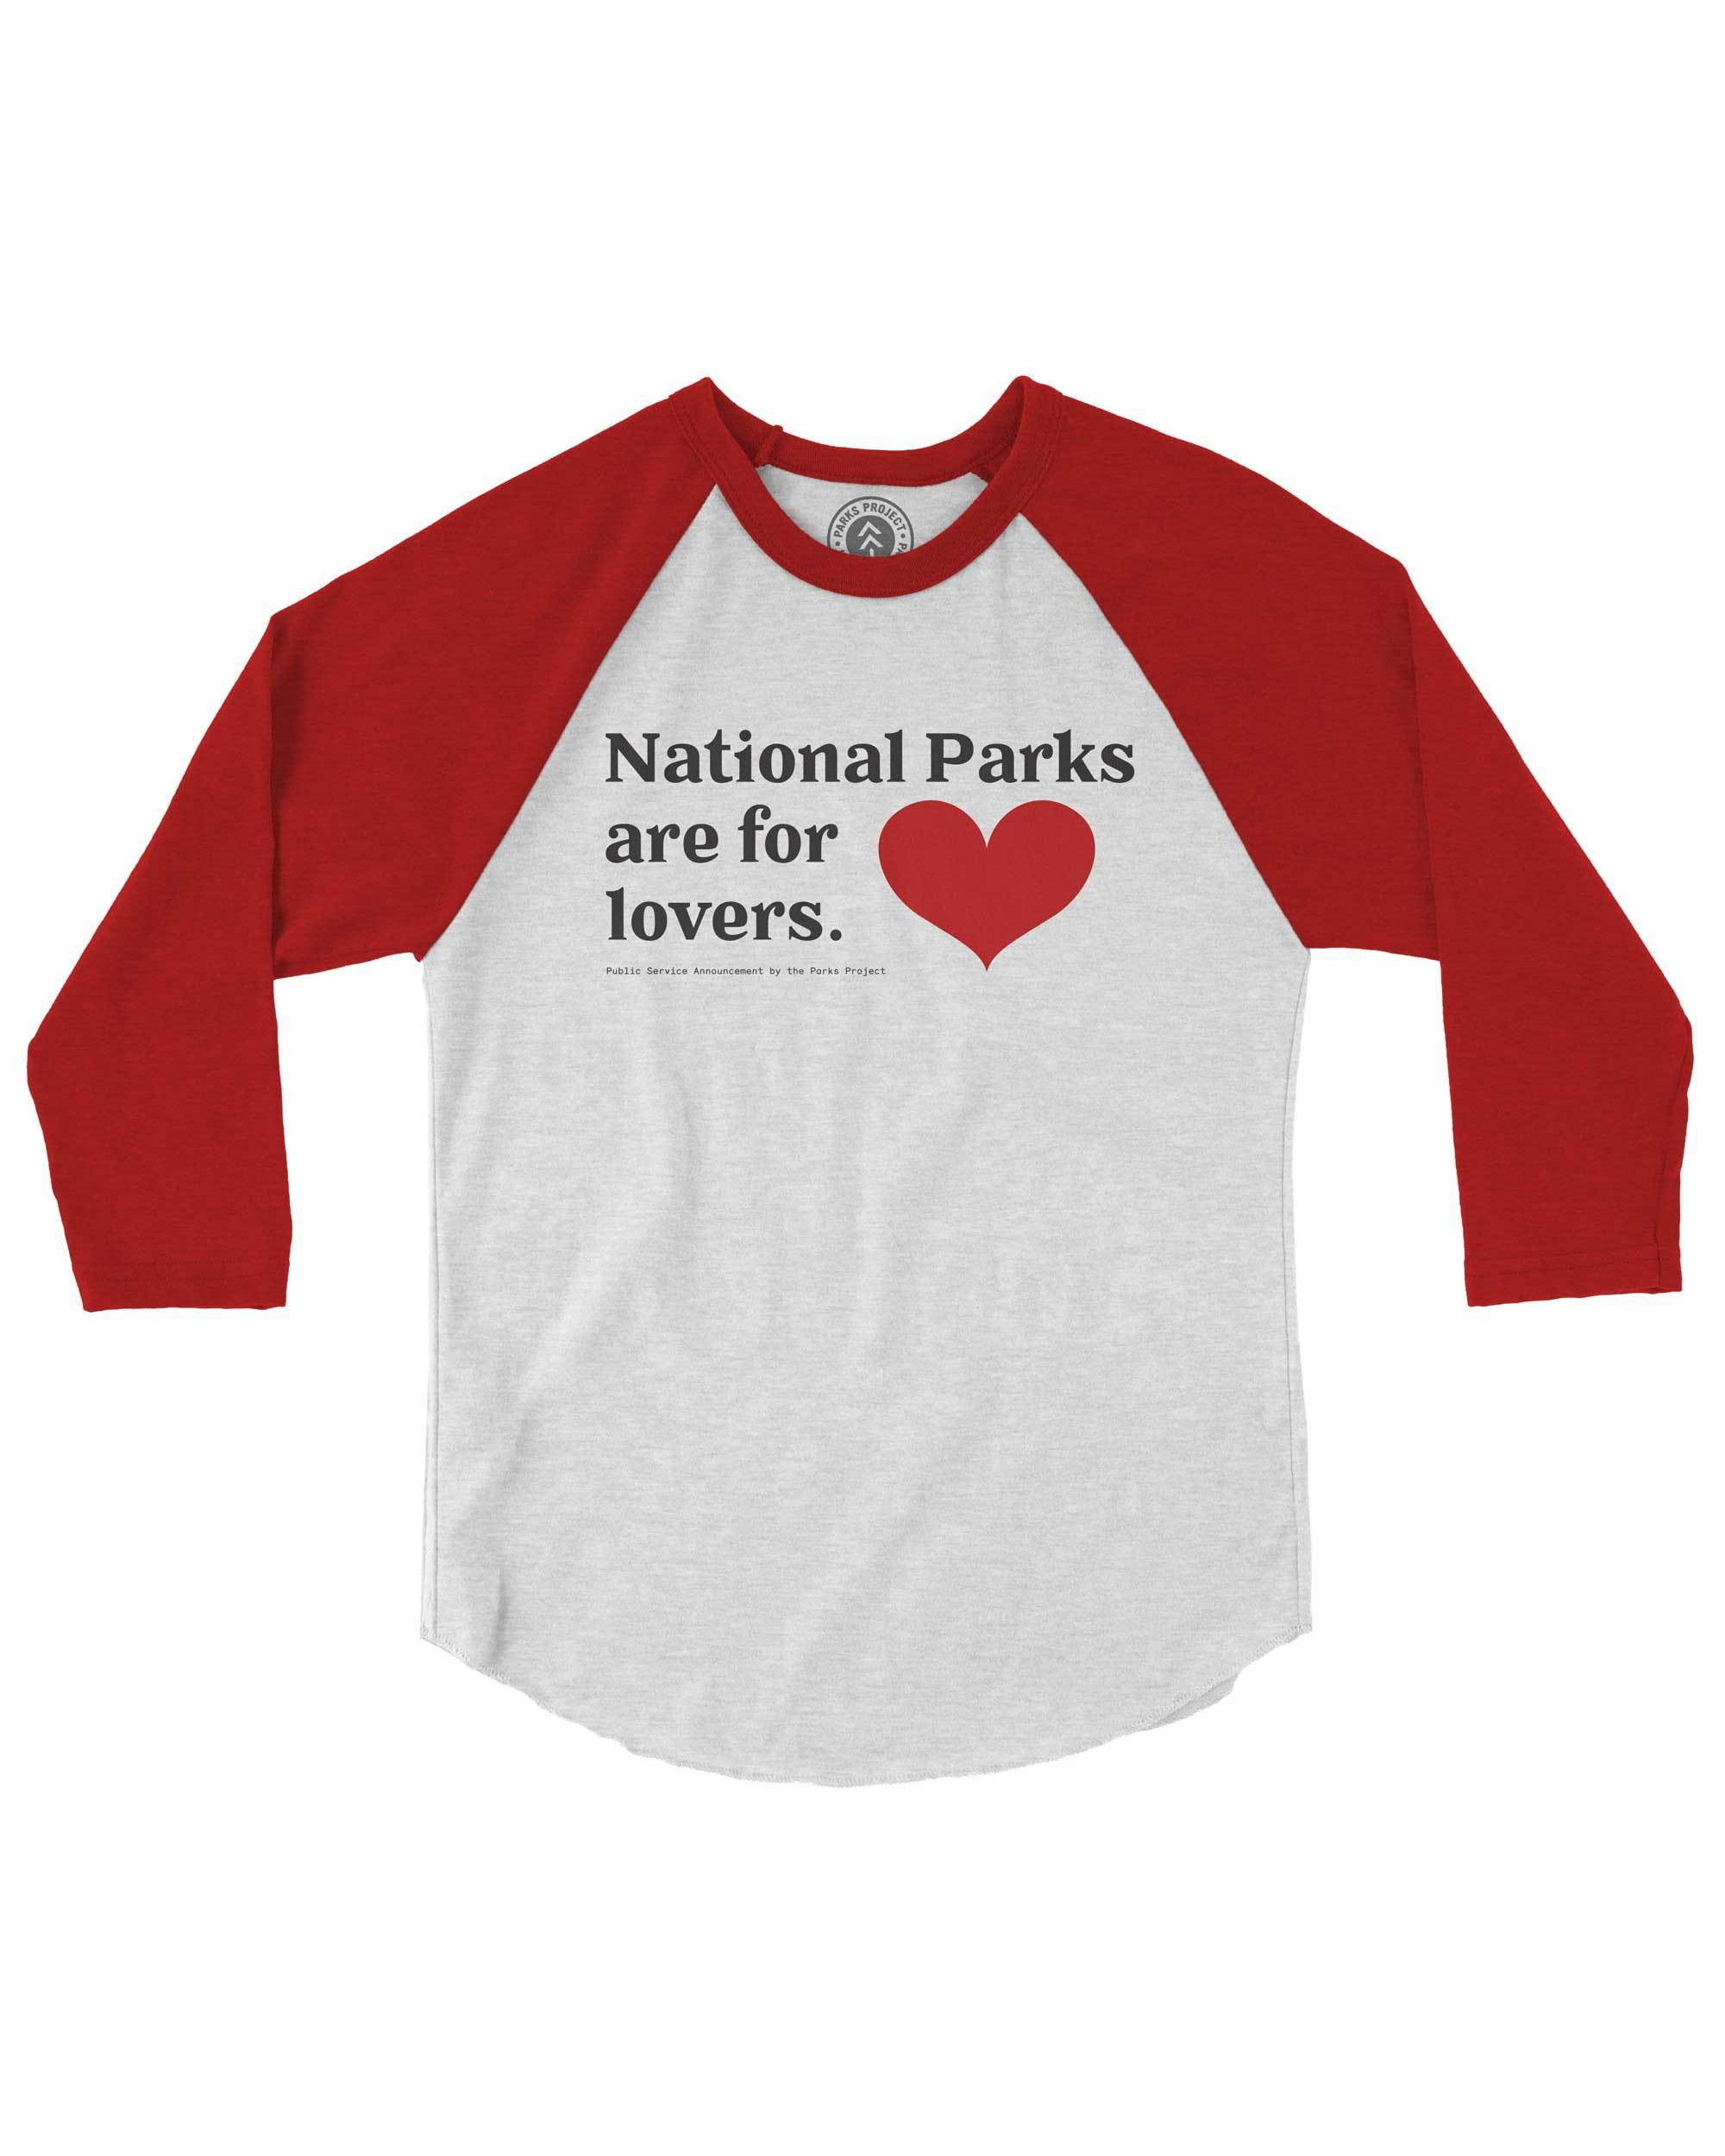 Parks for Lovers Youth Raglan | Parks Project | National Parks Kids Tees